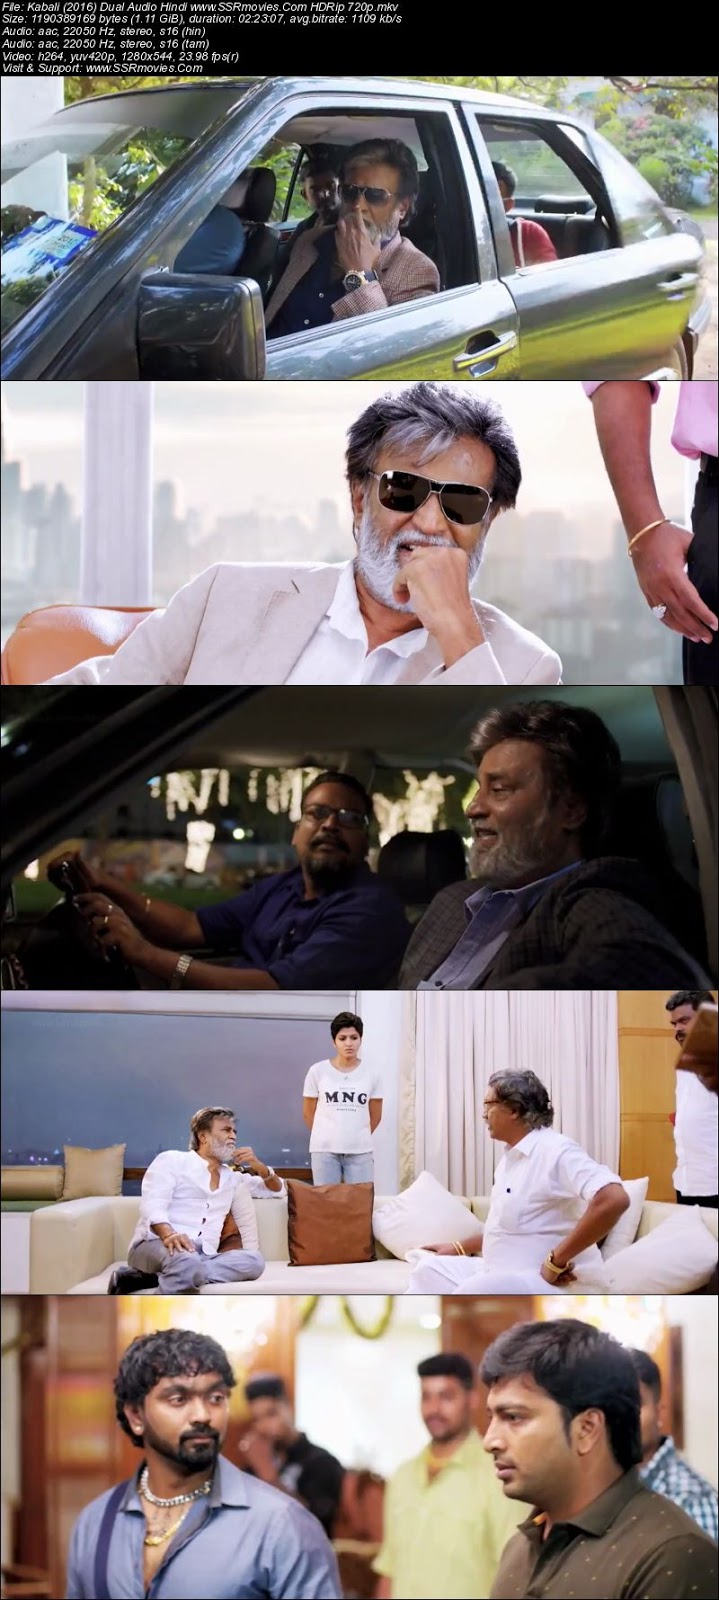 Kabali images download hd 720p tamil movie